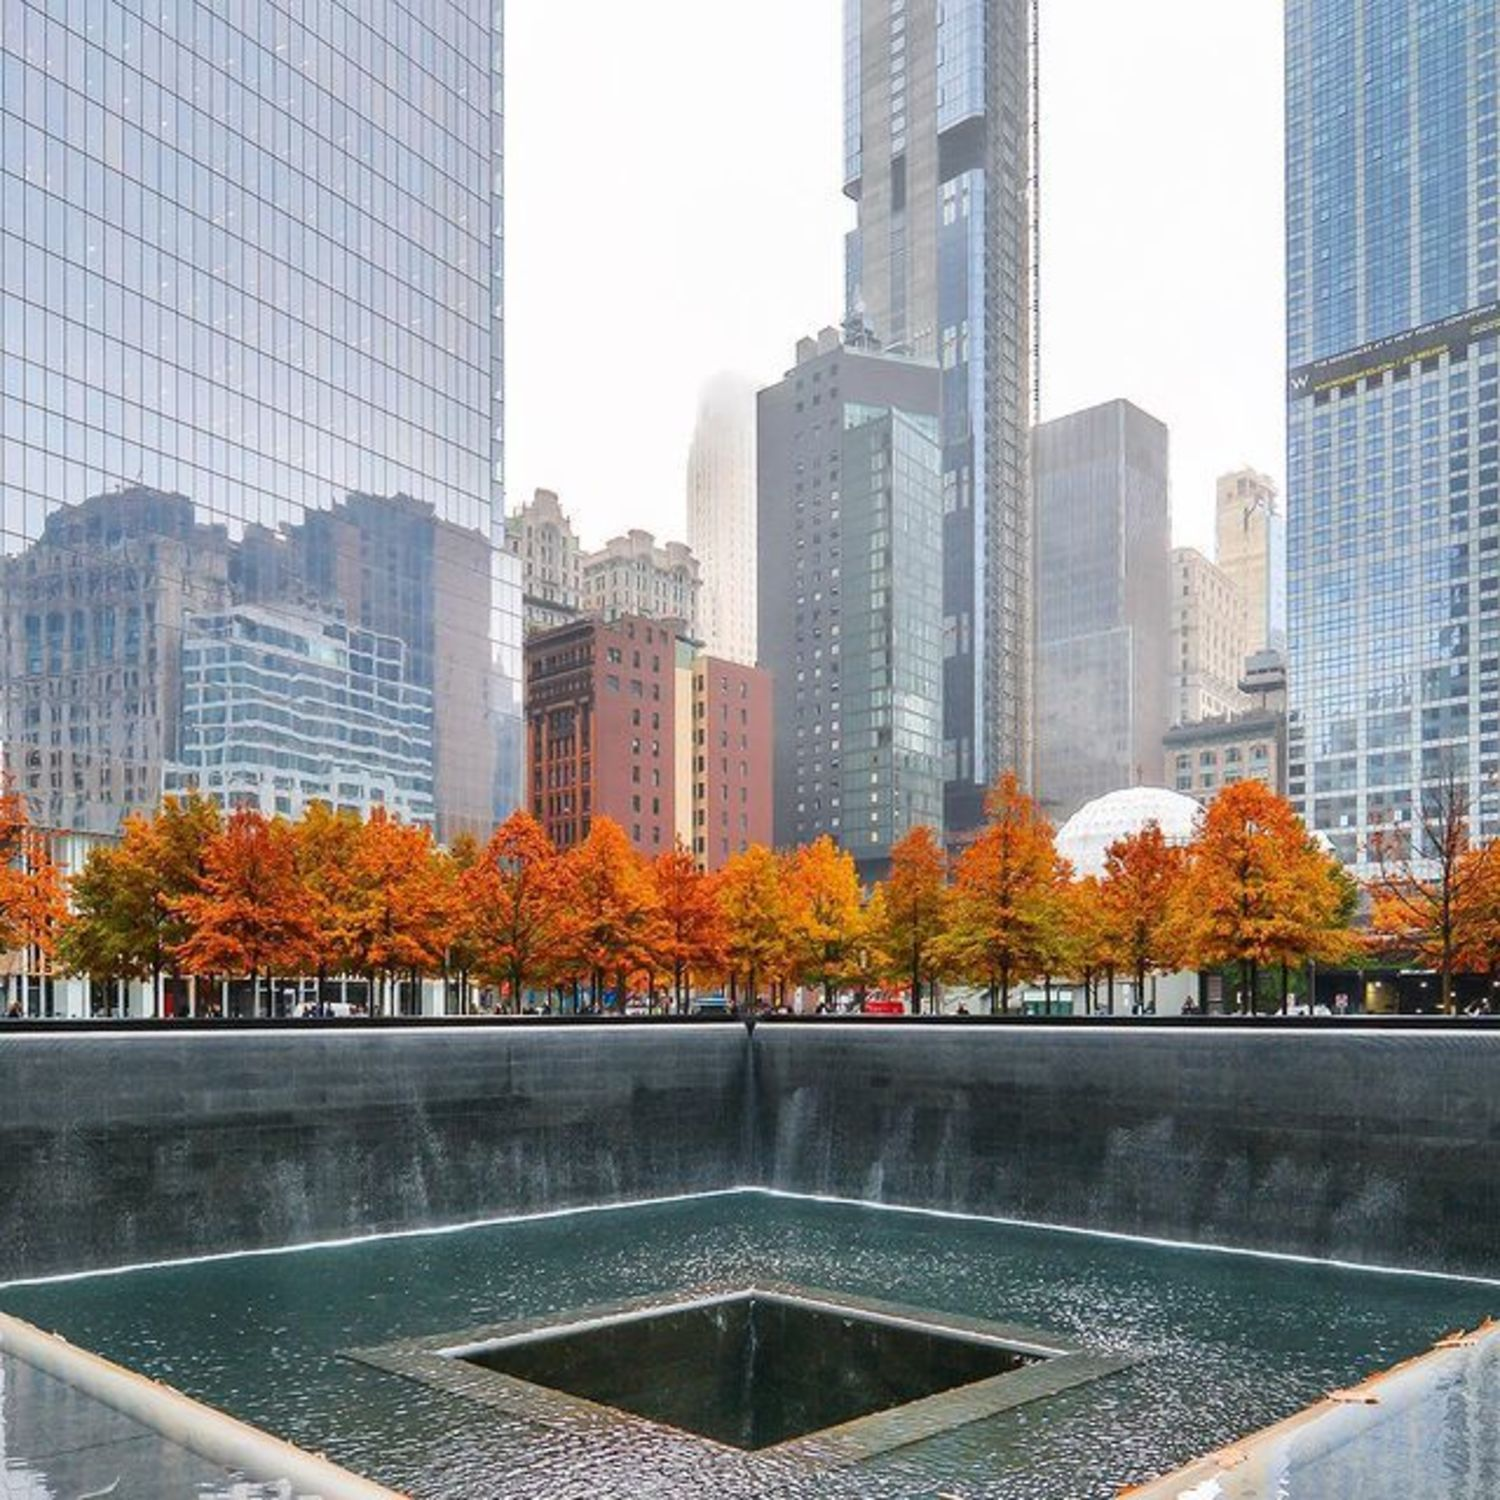 9/11 Memorial & Museum, Financial District, Manhattan